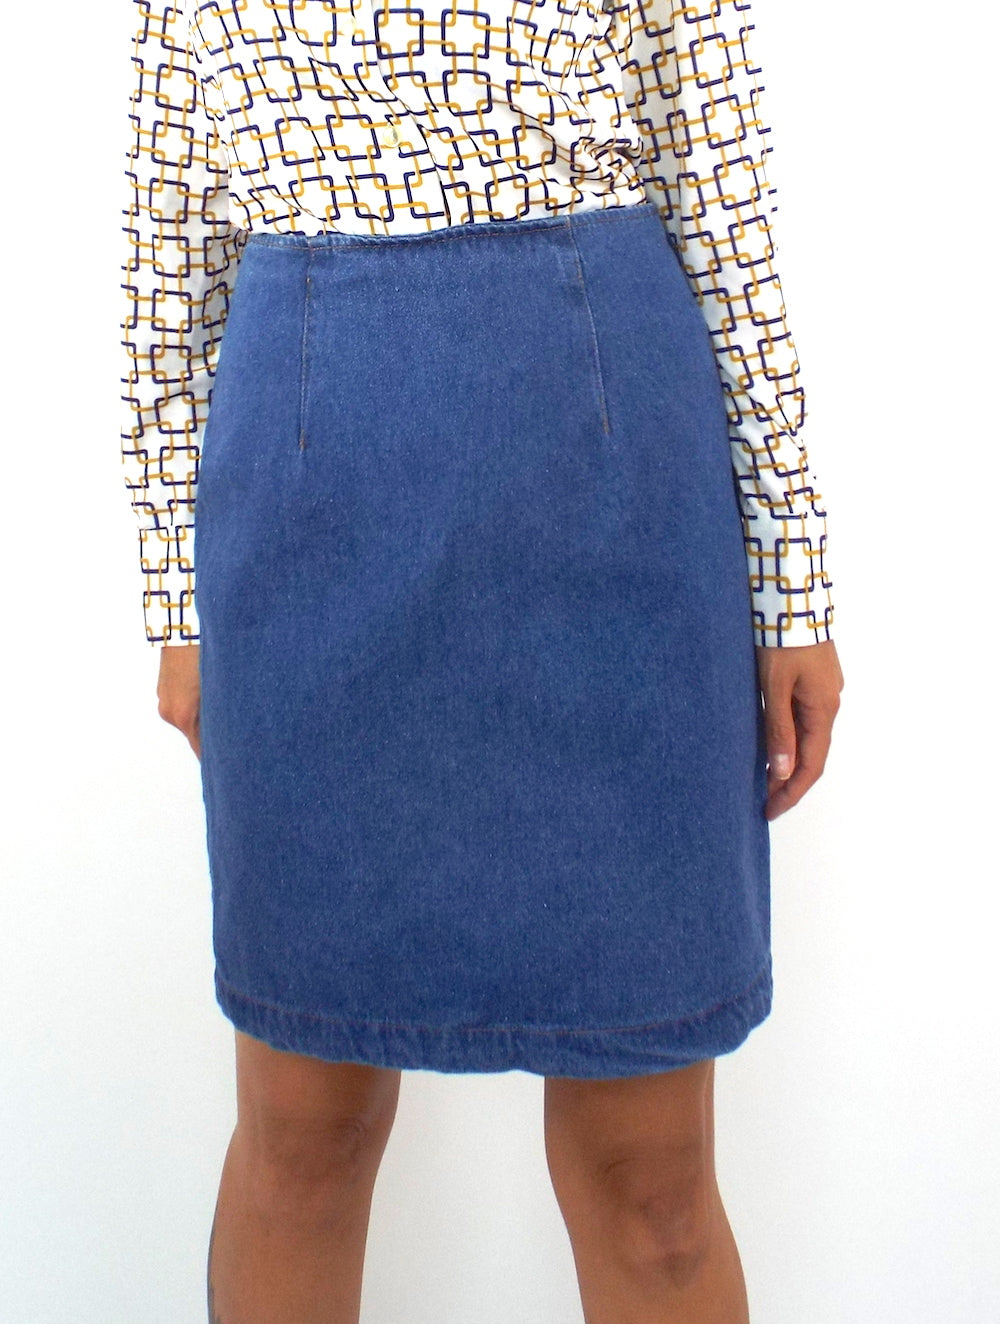 Vintage 90s High-Waist Denim Pencil Skirt-- Size 28